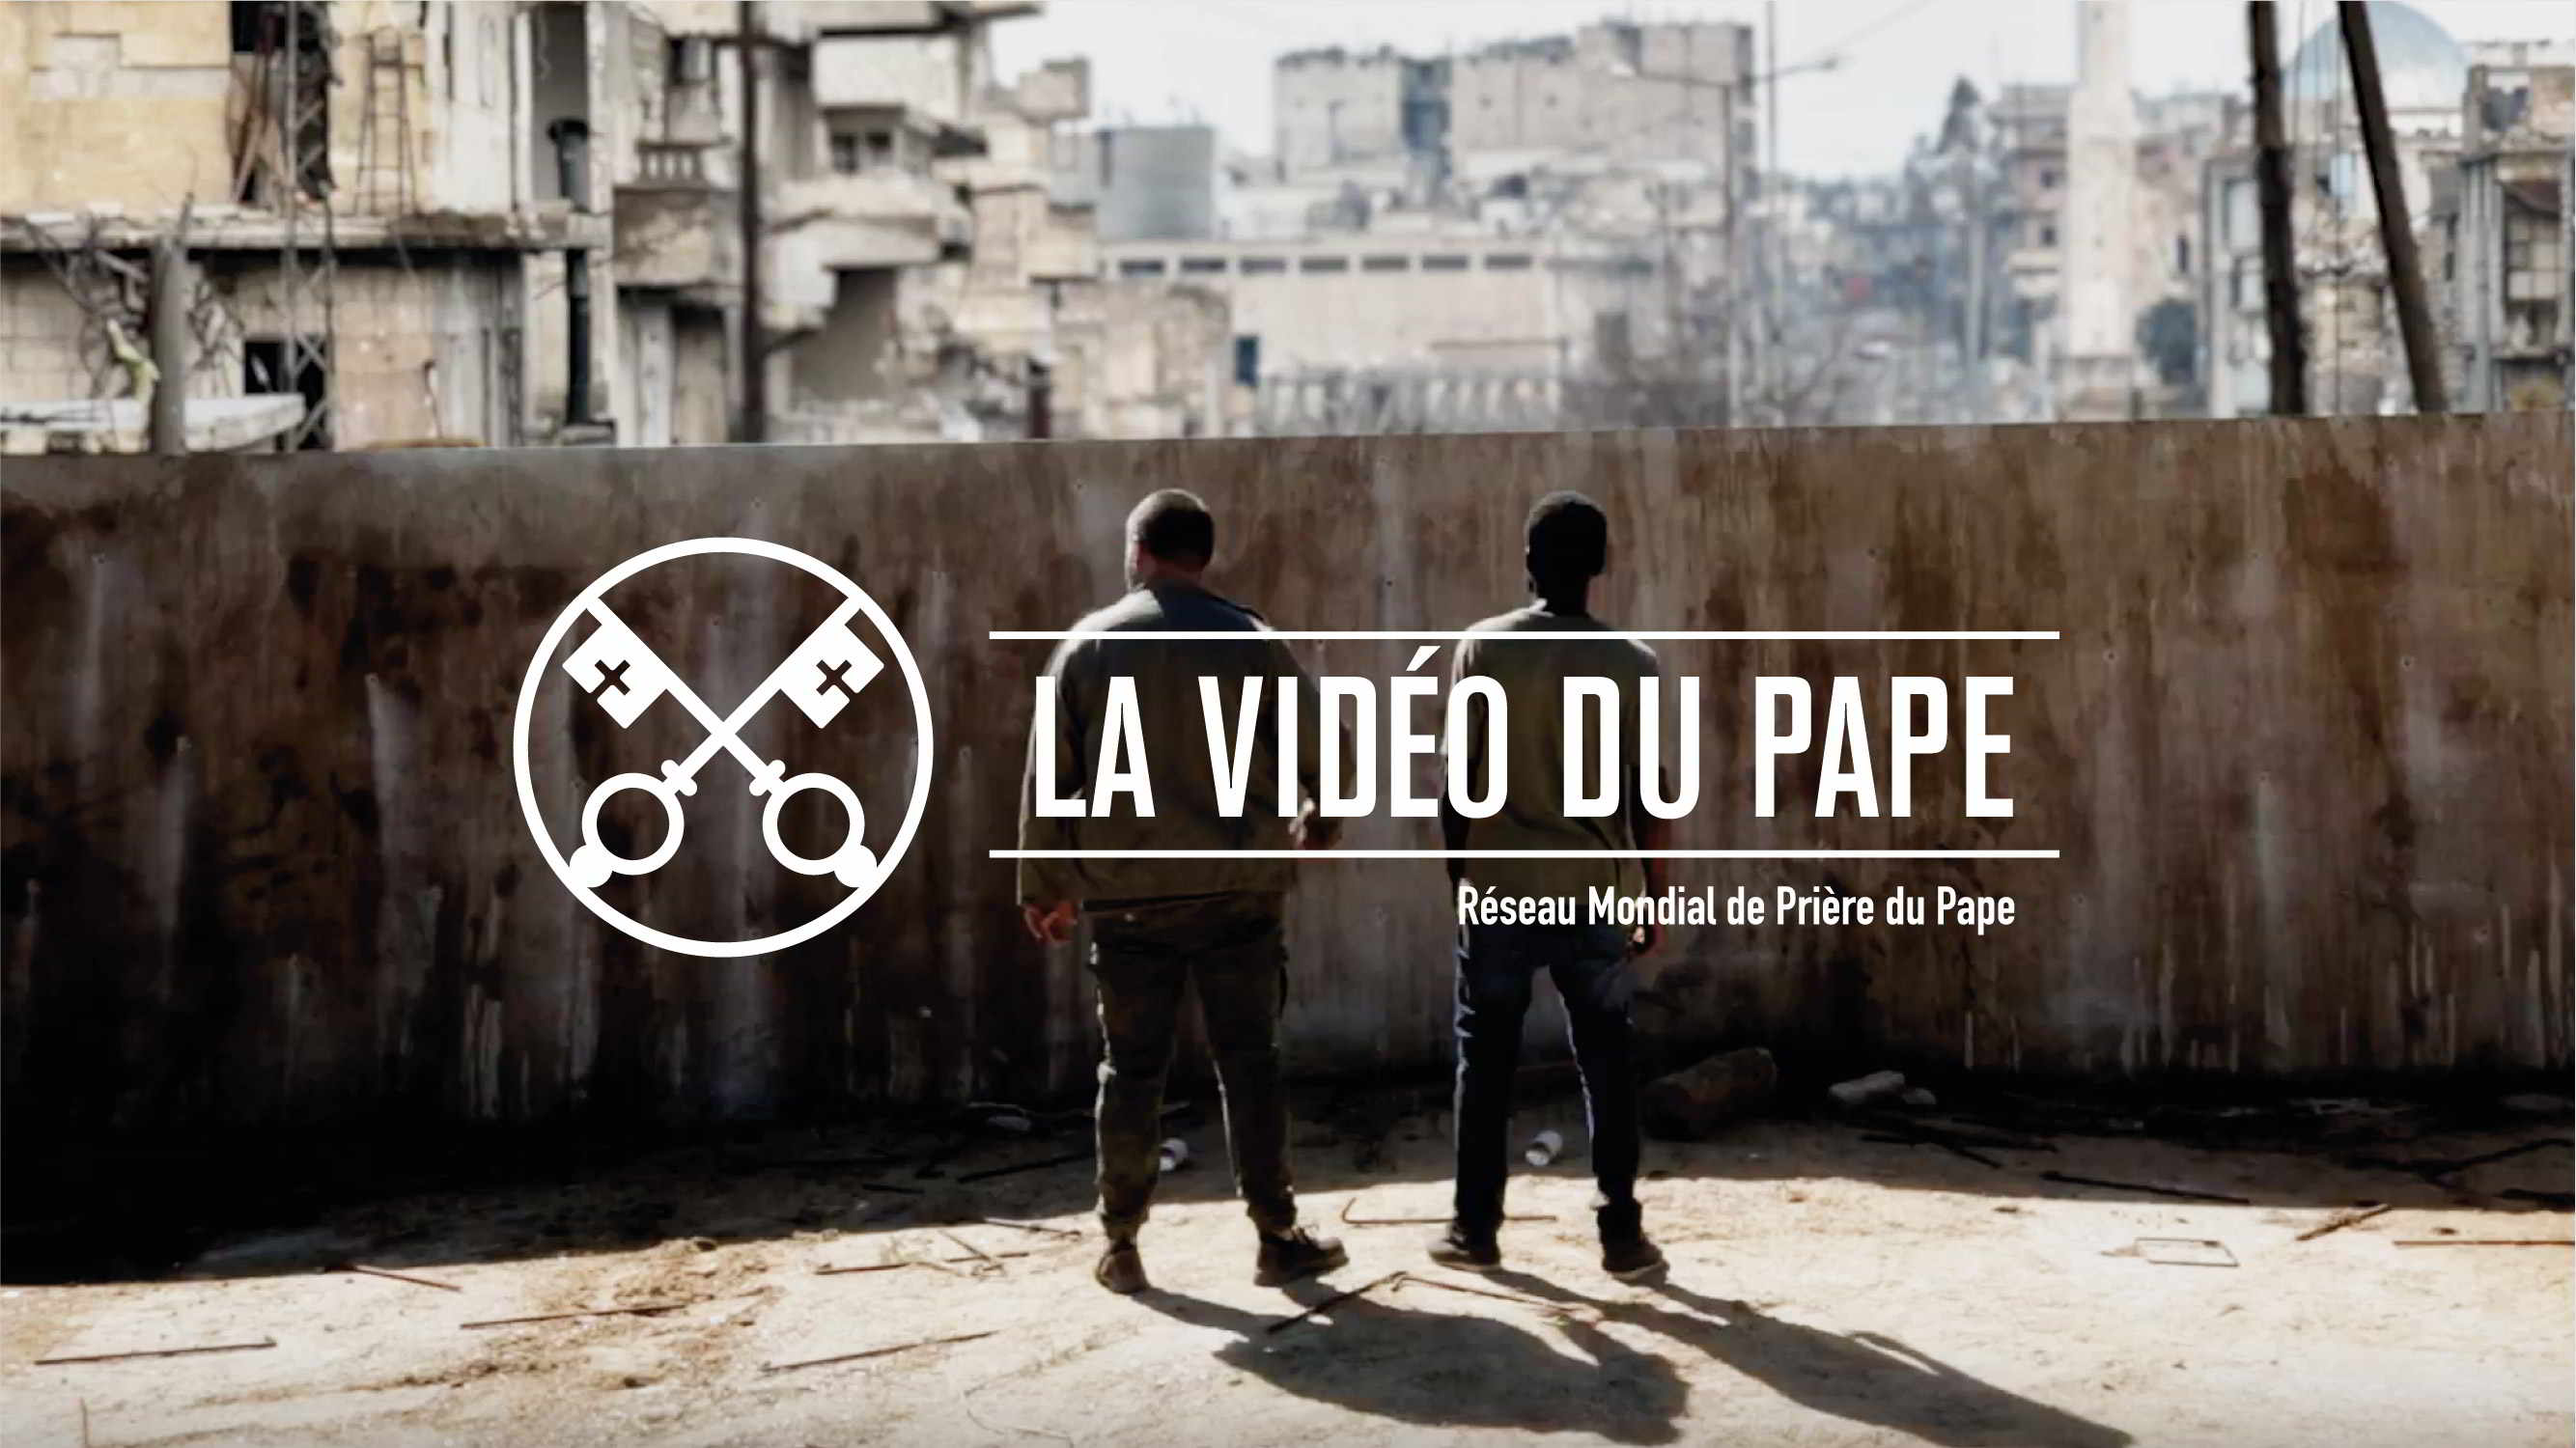 Youtube-Image-The-Pope-Video-11-2018-In-the-Service-of-Peace-4-French